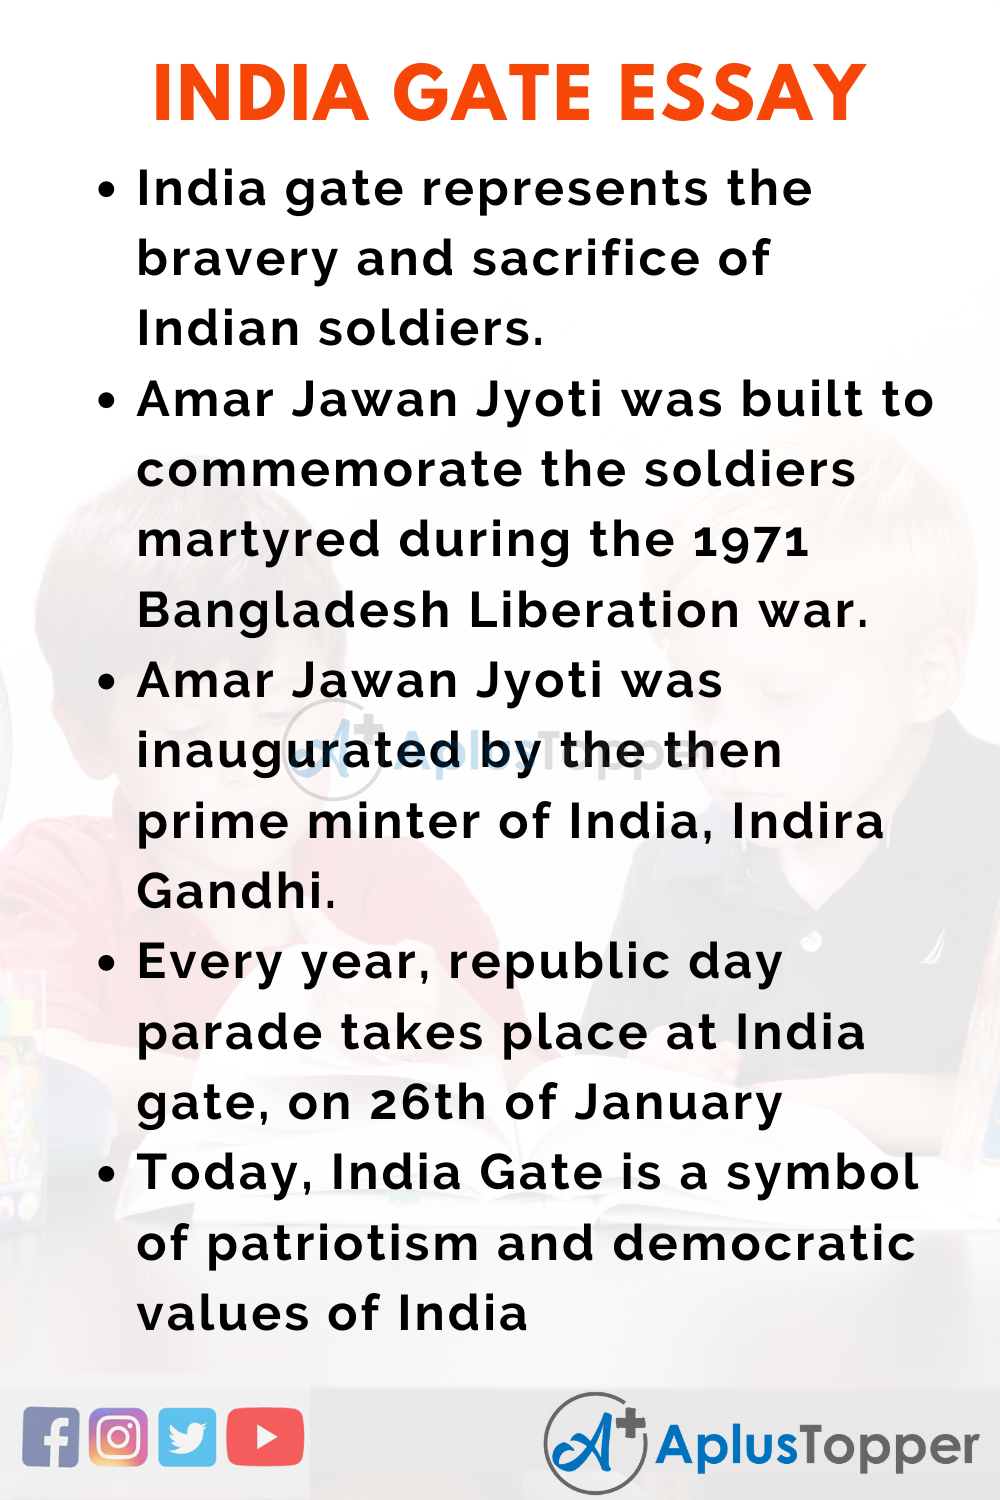 Essay About India Gate